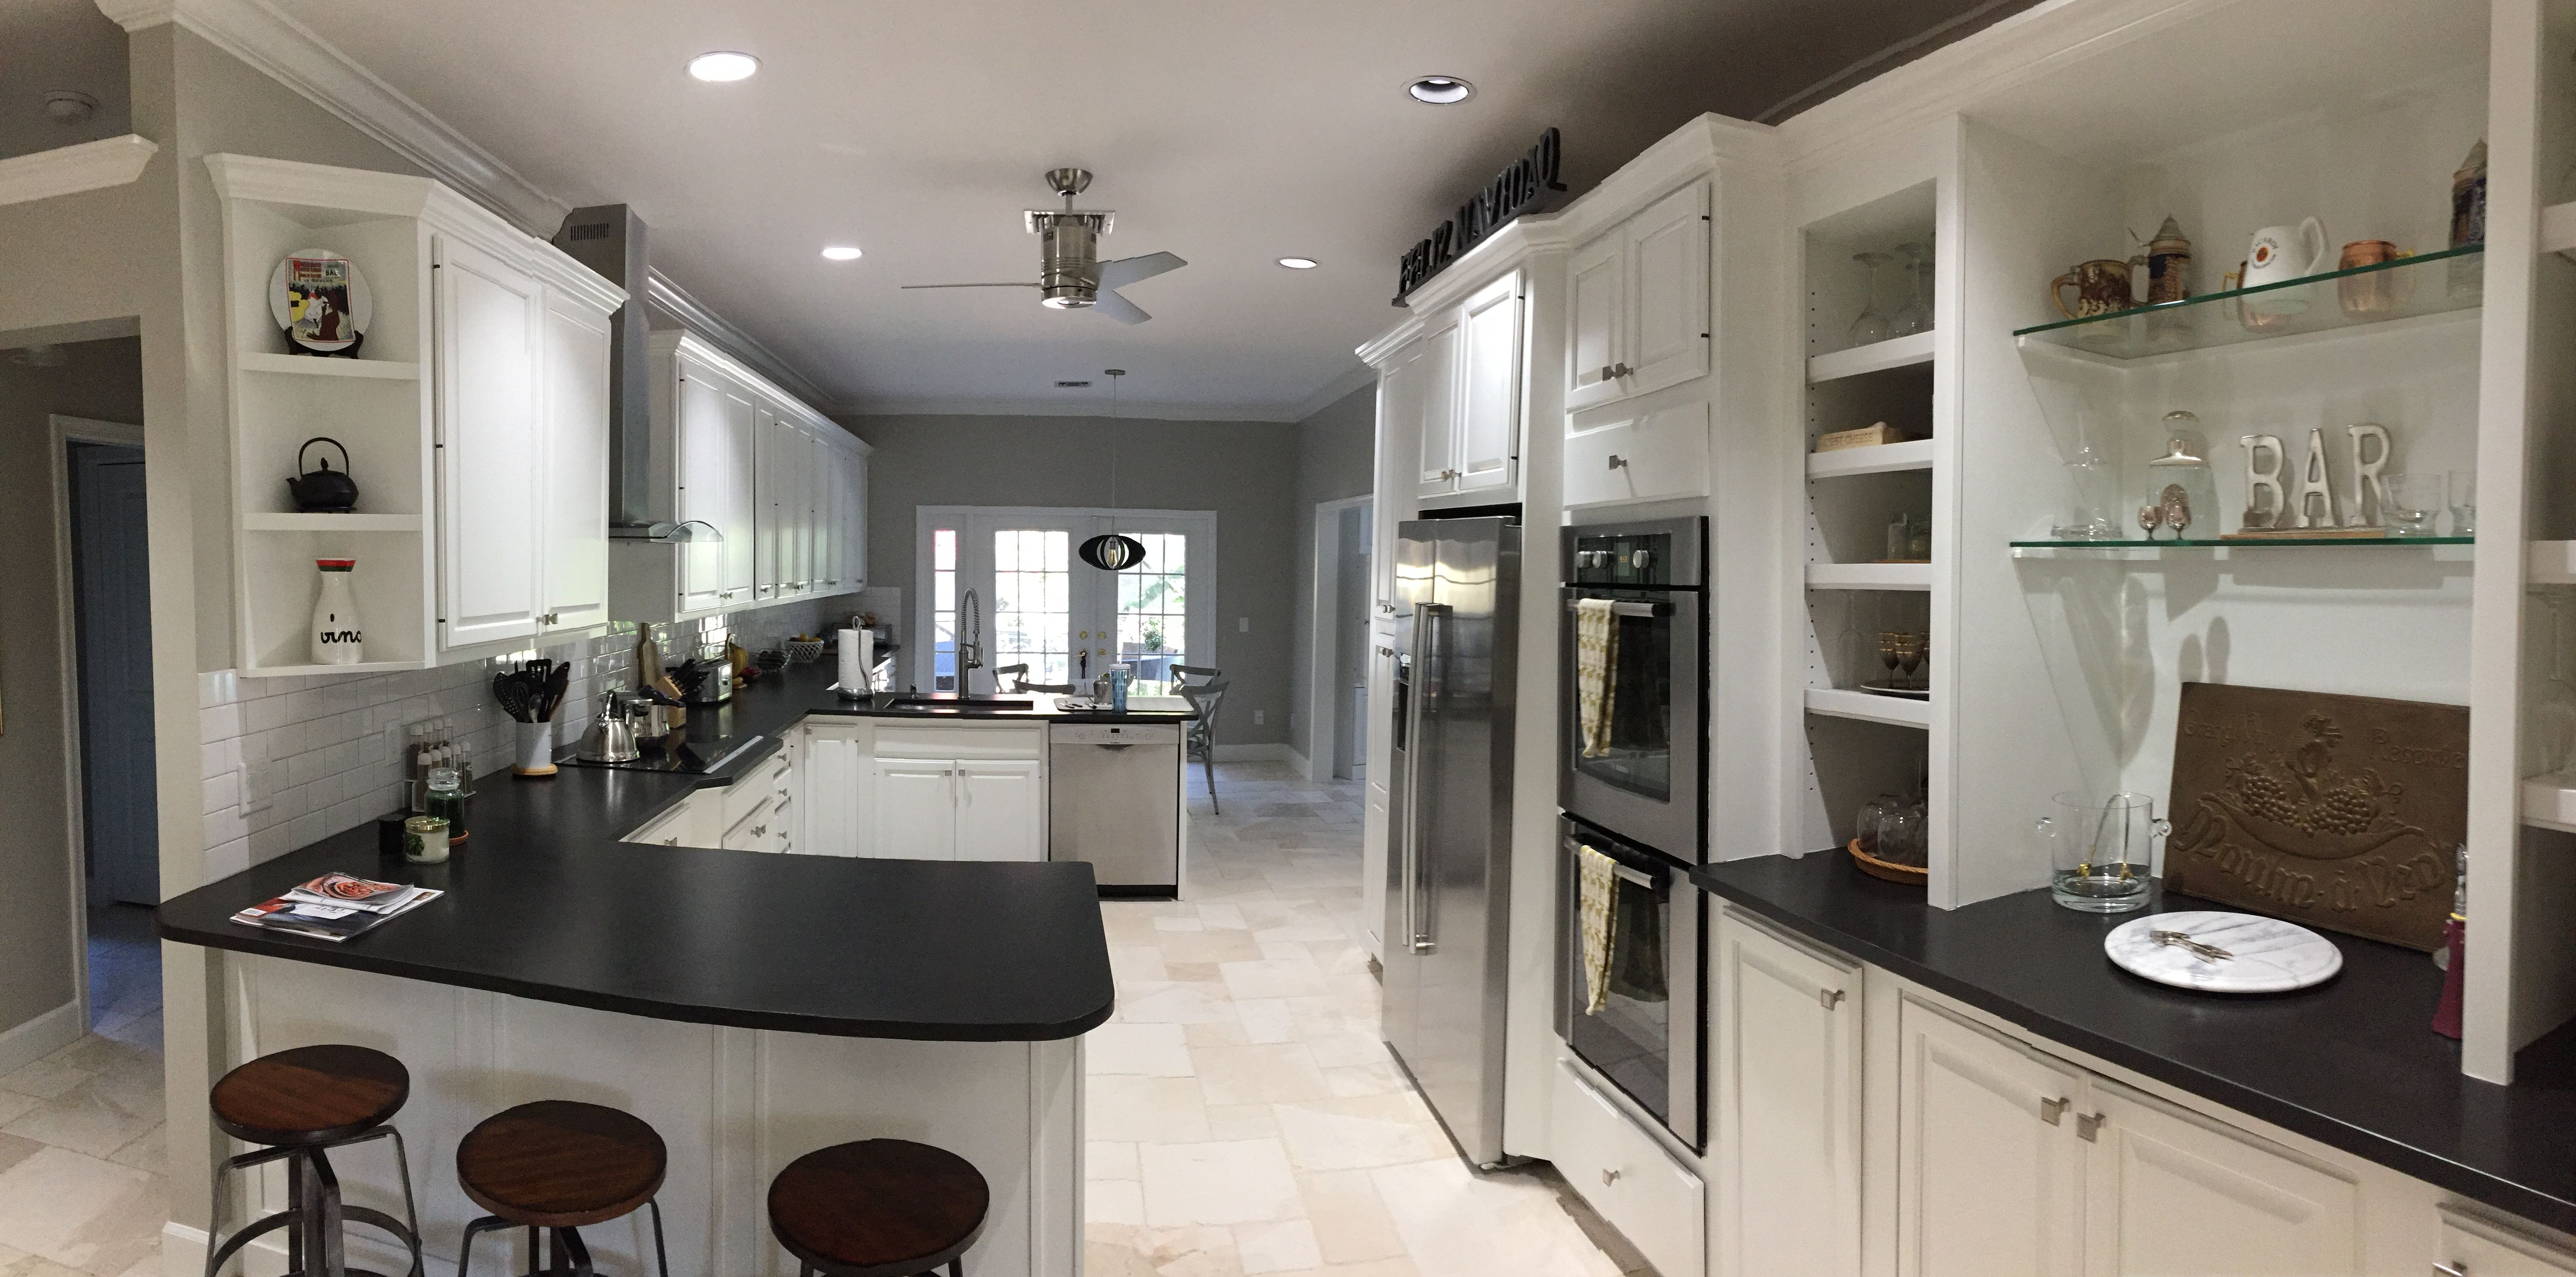 Pin By Jaworski Painting On Cabinet Painting And Refinishing Painting Kitchen Cabinets Painting Cabinets Home Decor